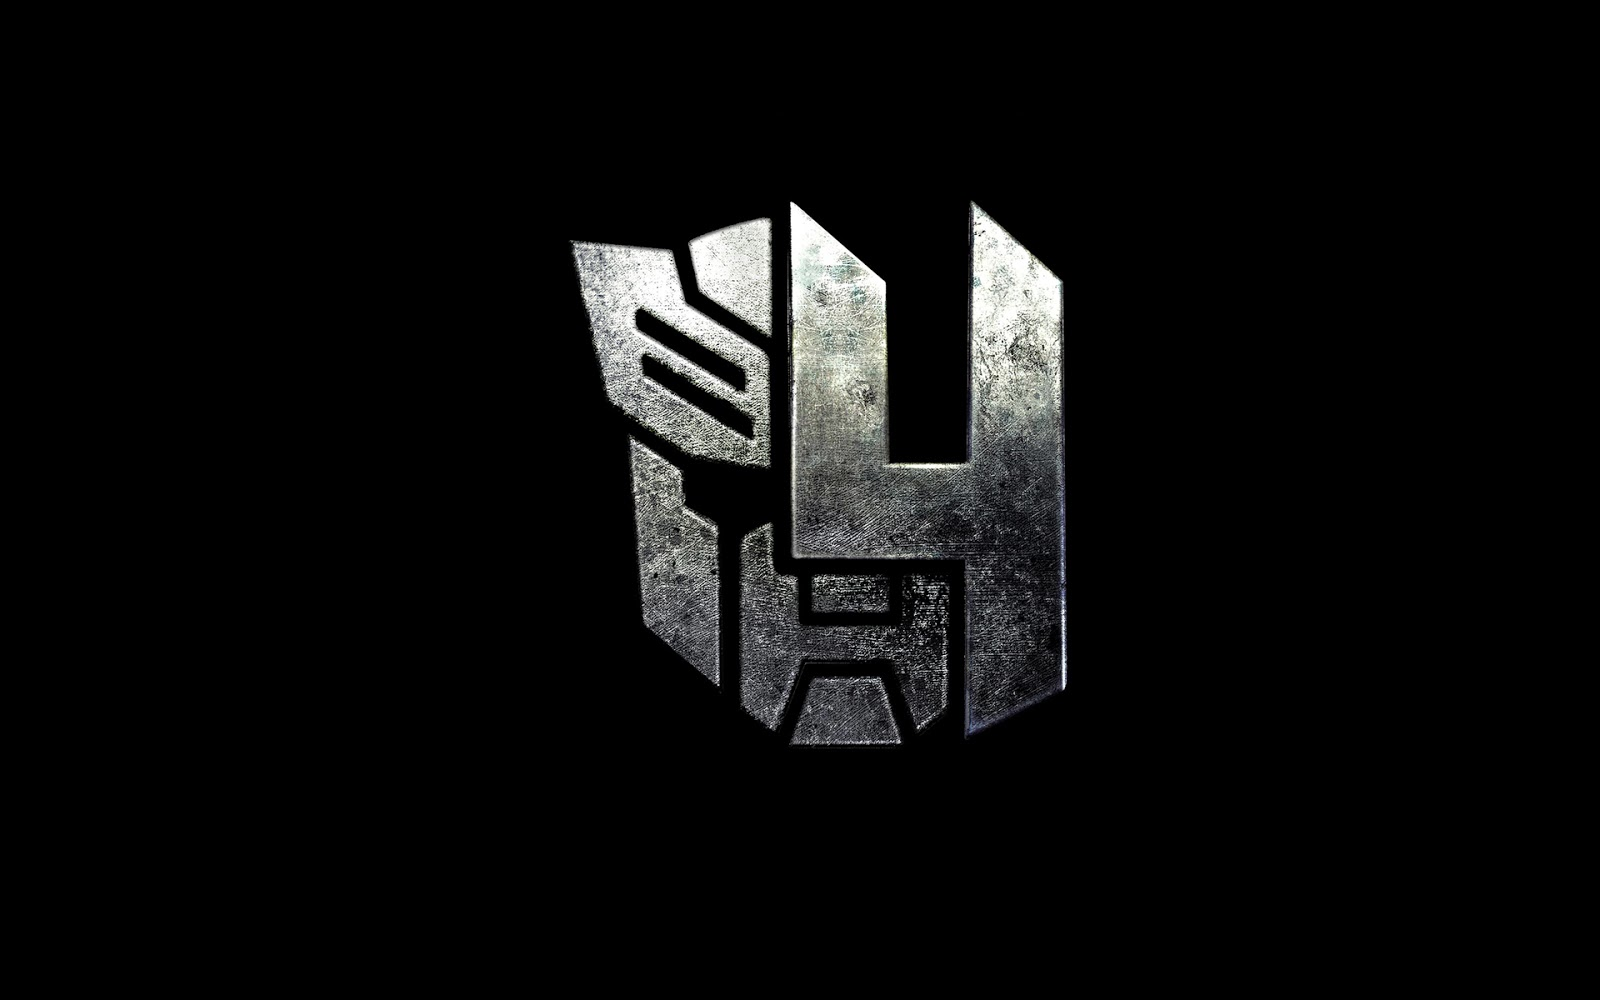 autobots logo transformers 4 age of extinction 2014 movie hd wallpaper 1600x1000